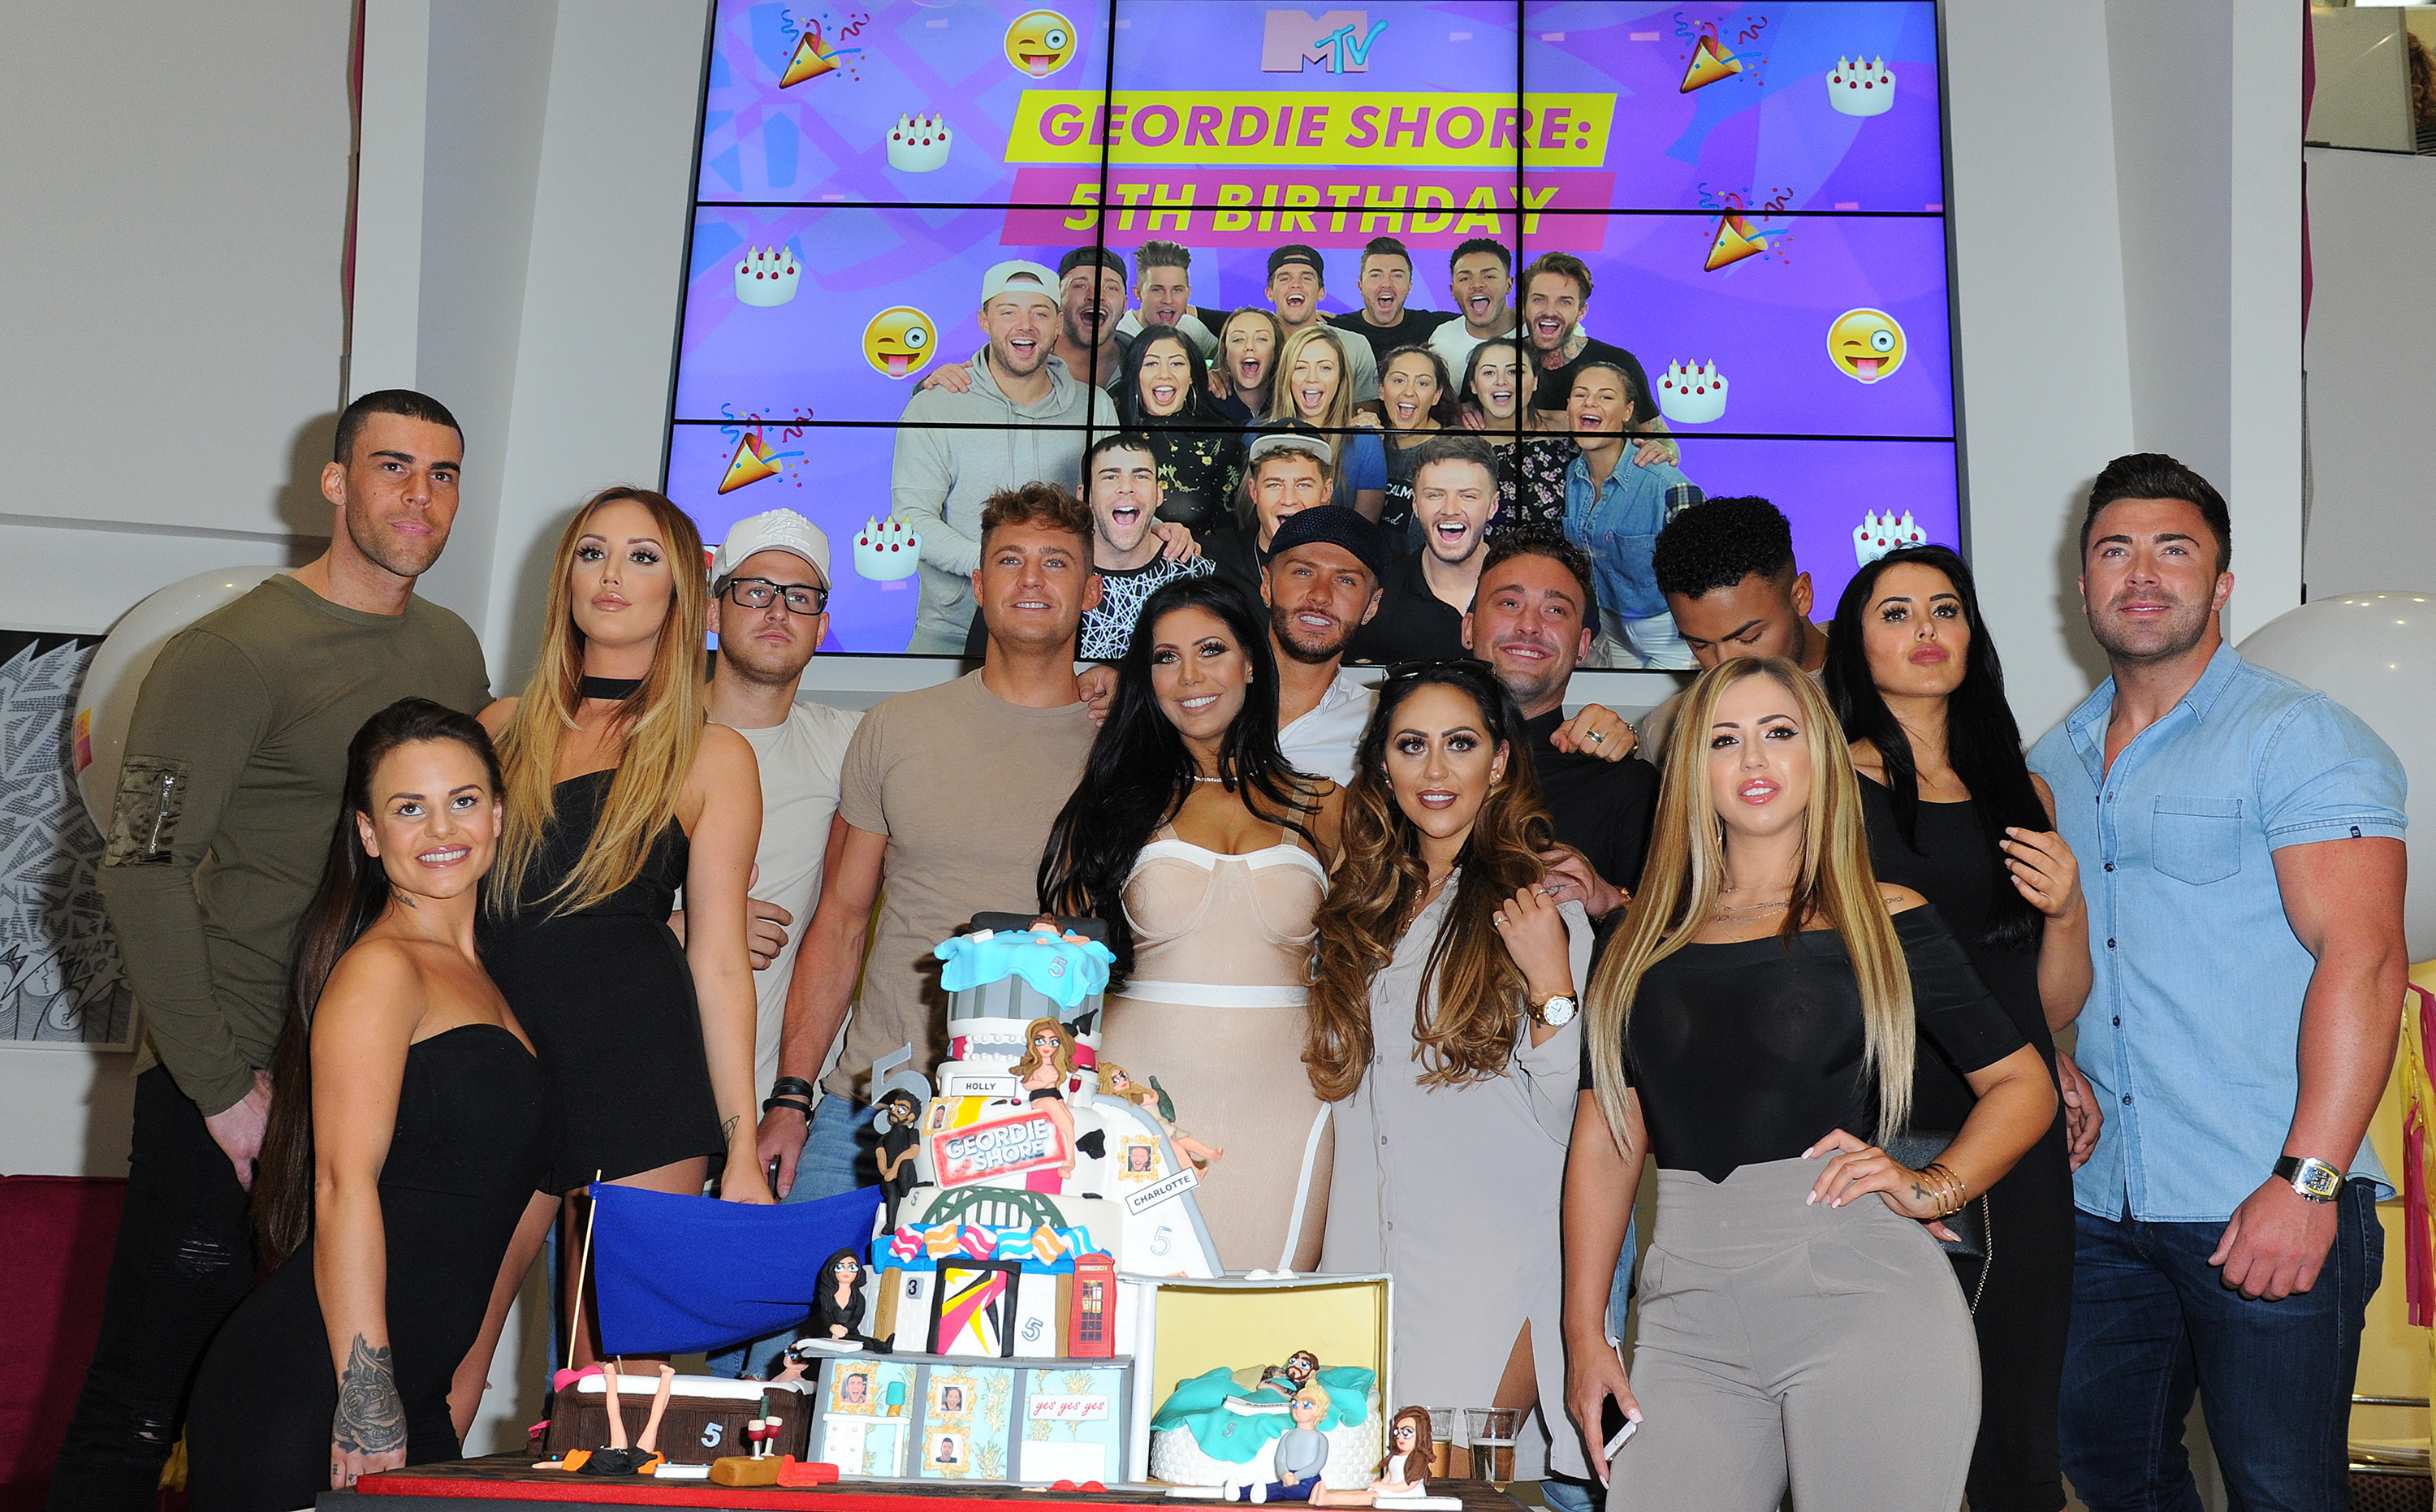 Geordie Shore Birthday